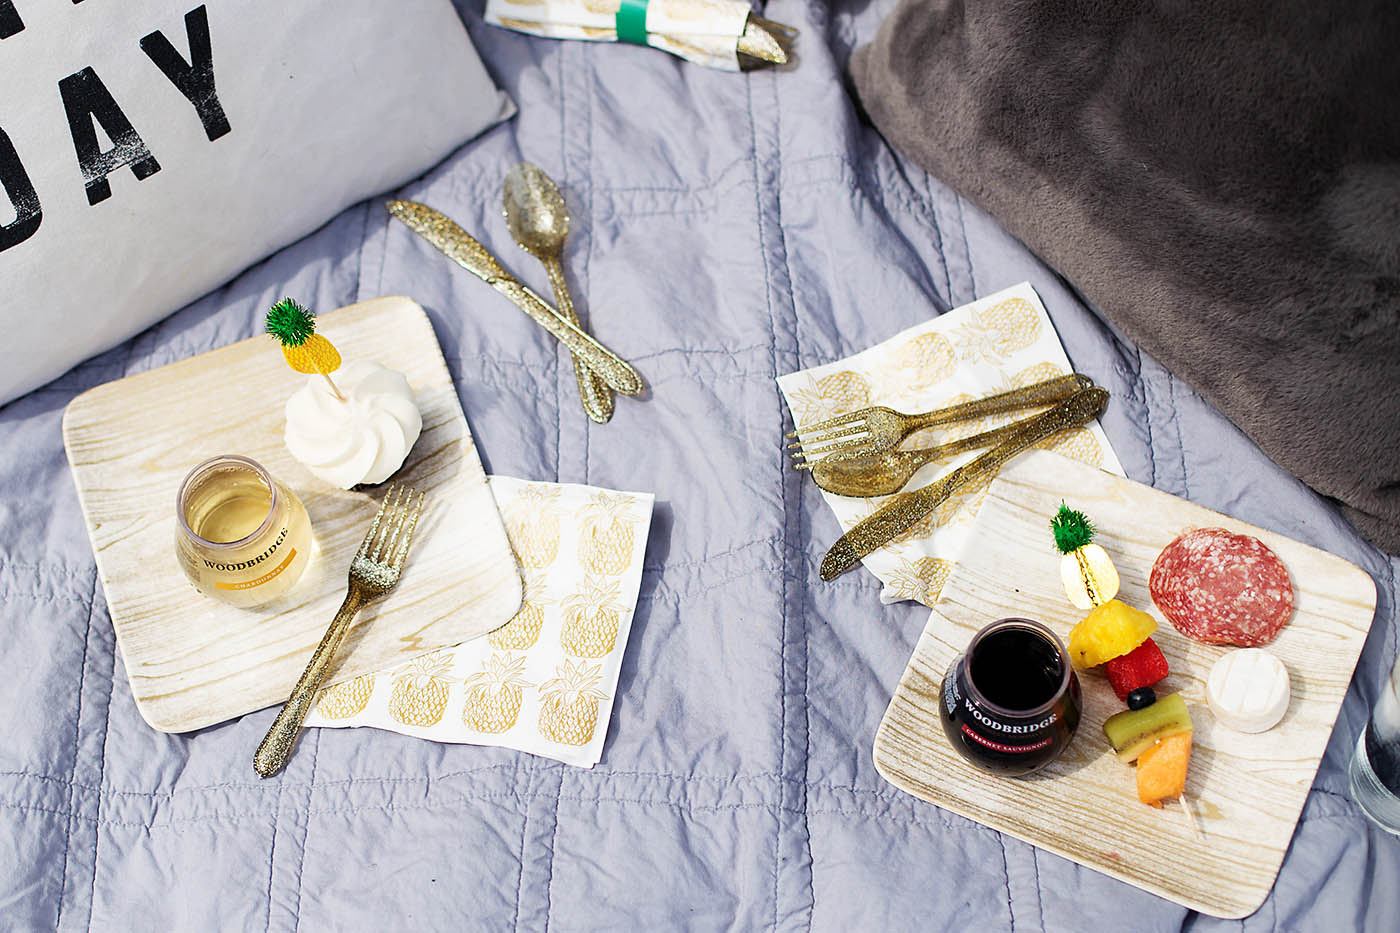 DIY Party in a Box including single serve wine, perfect for tailgate, camping or other outdoor parties